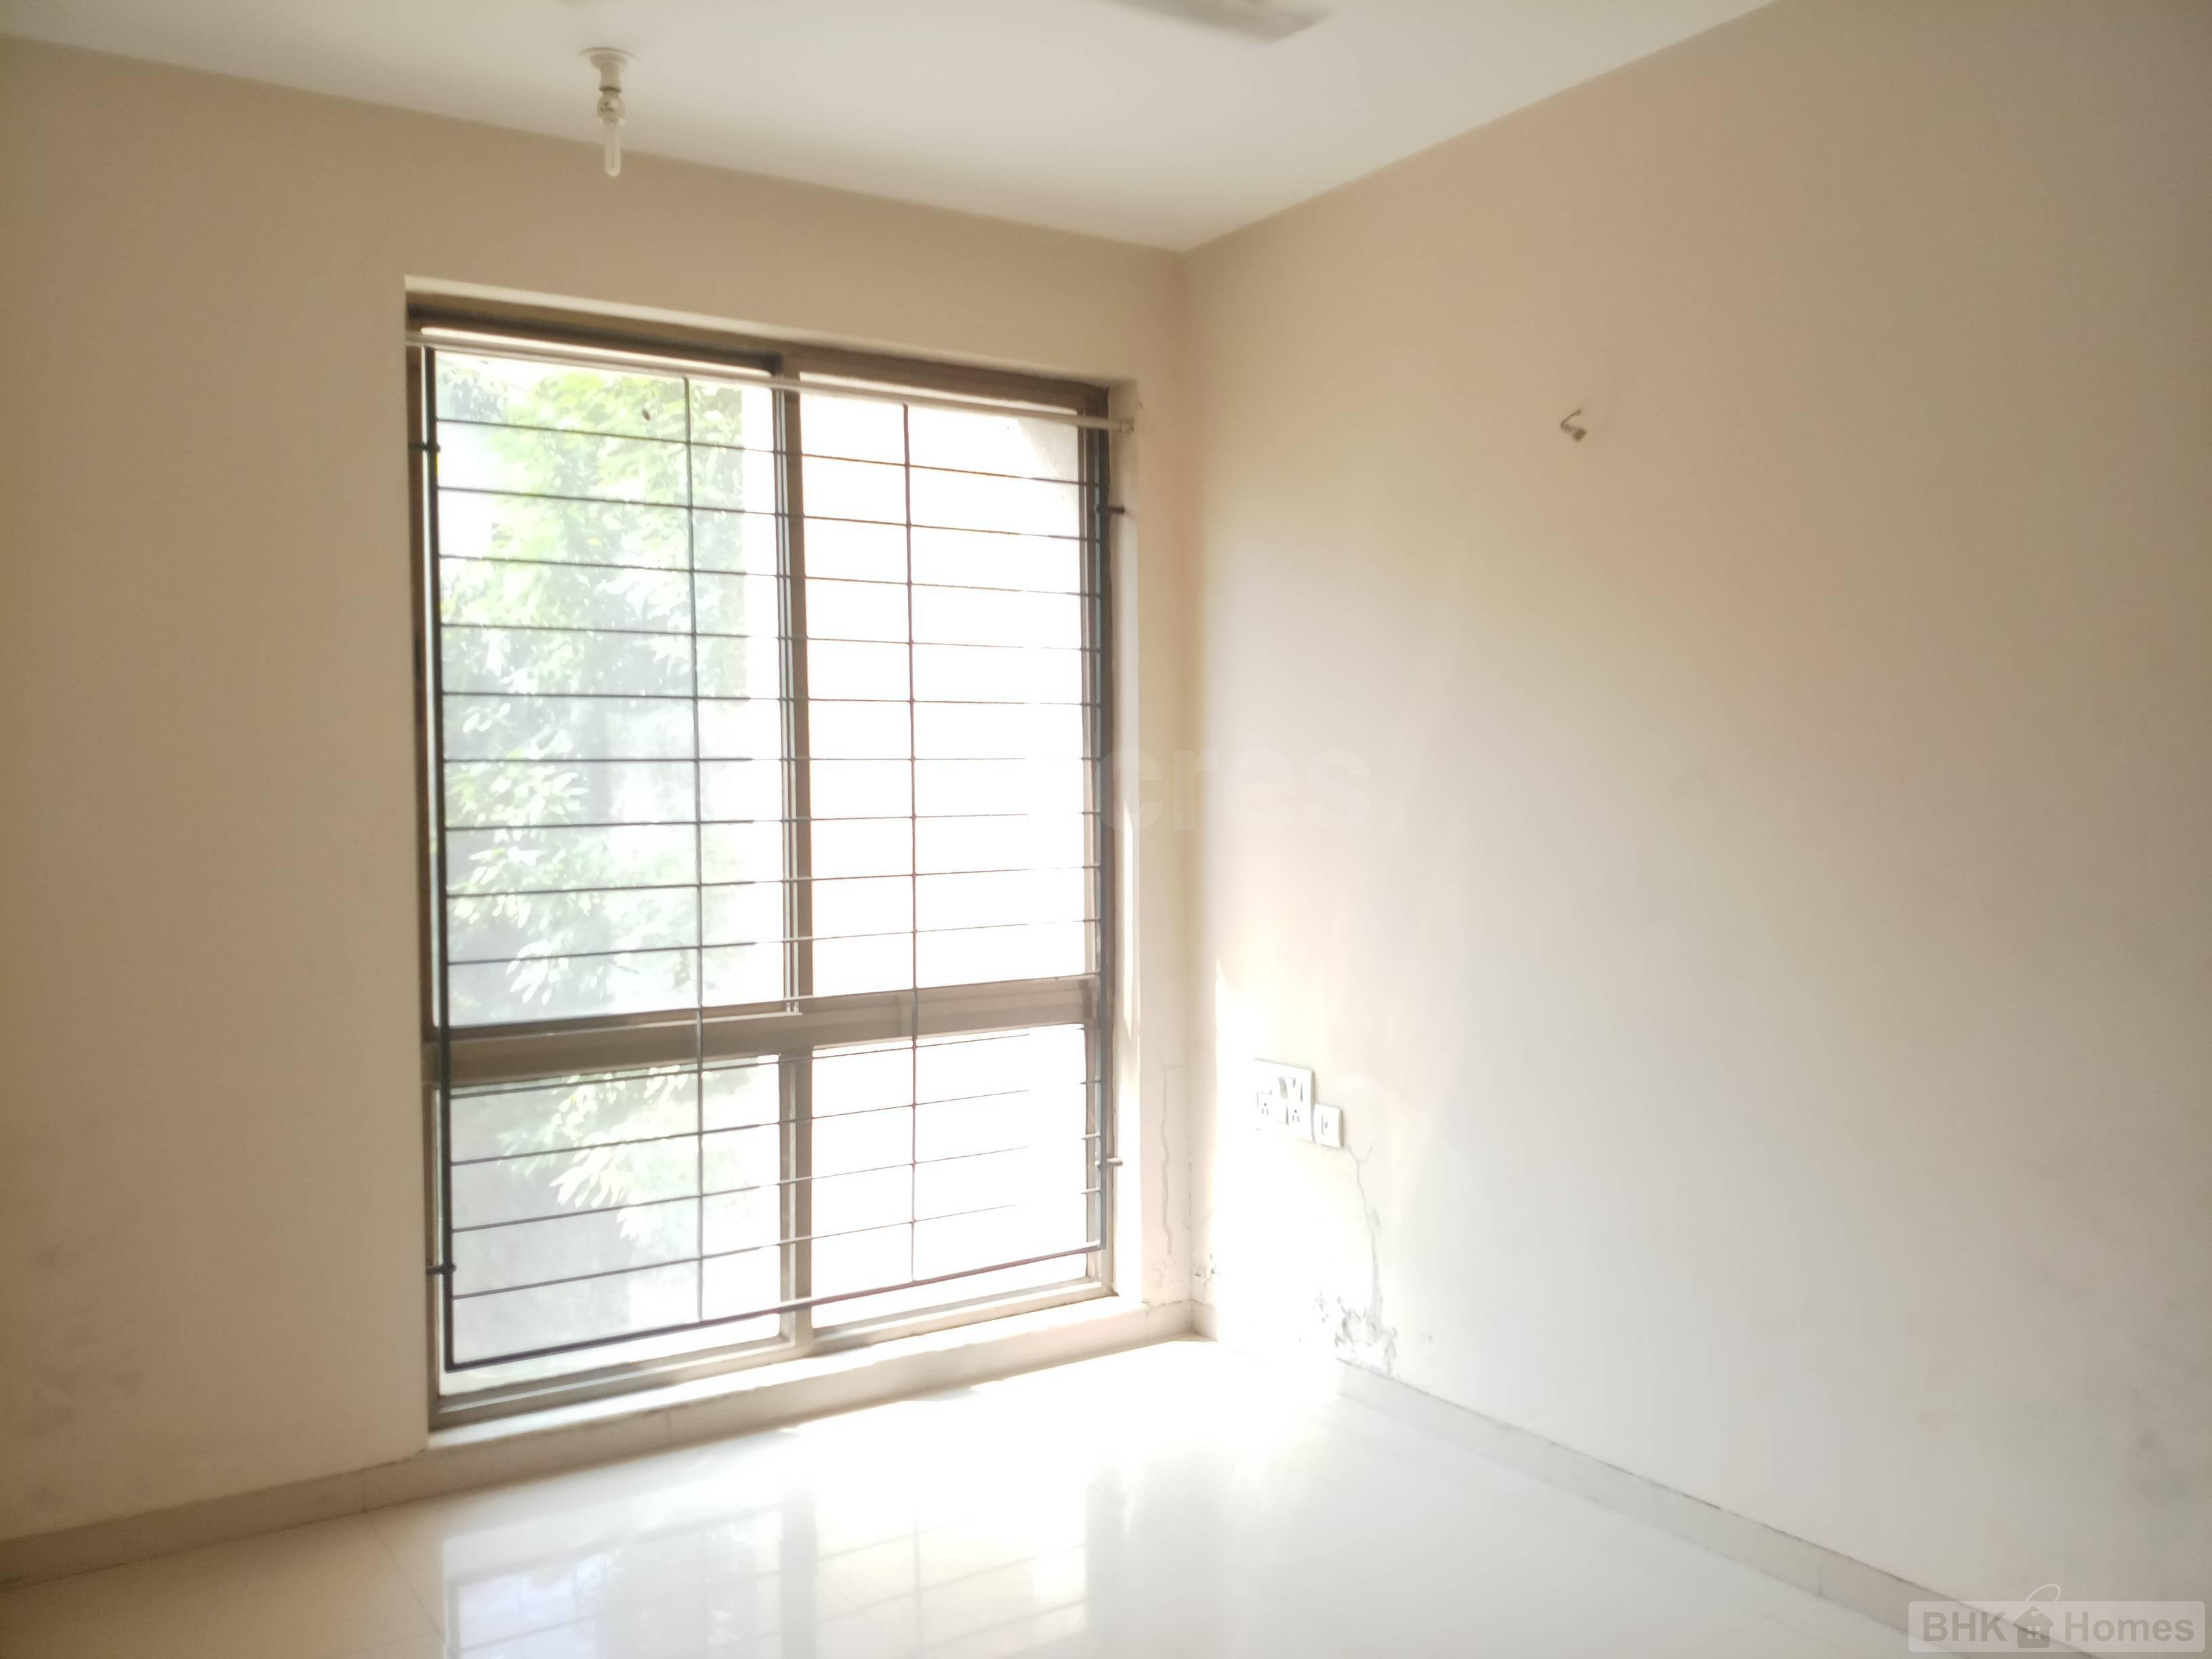 2 BHK Residential Apartment for Sale in Balewadi